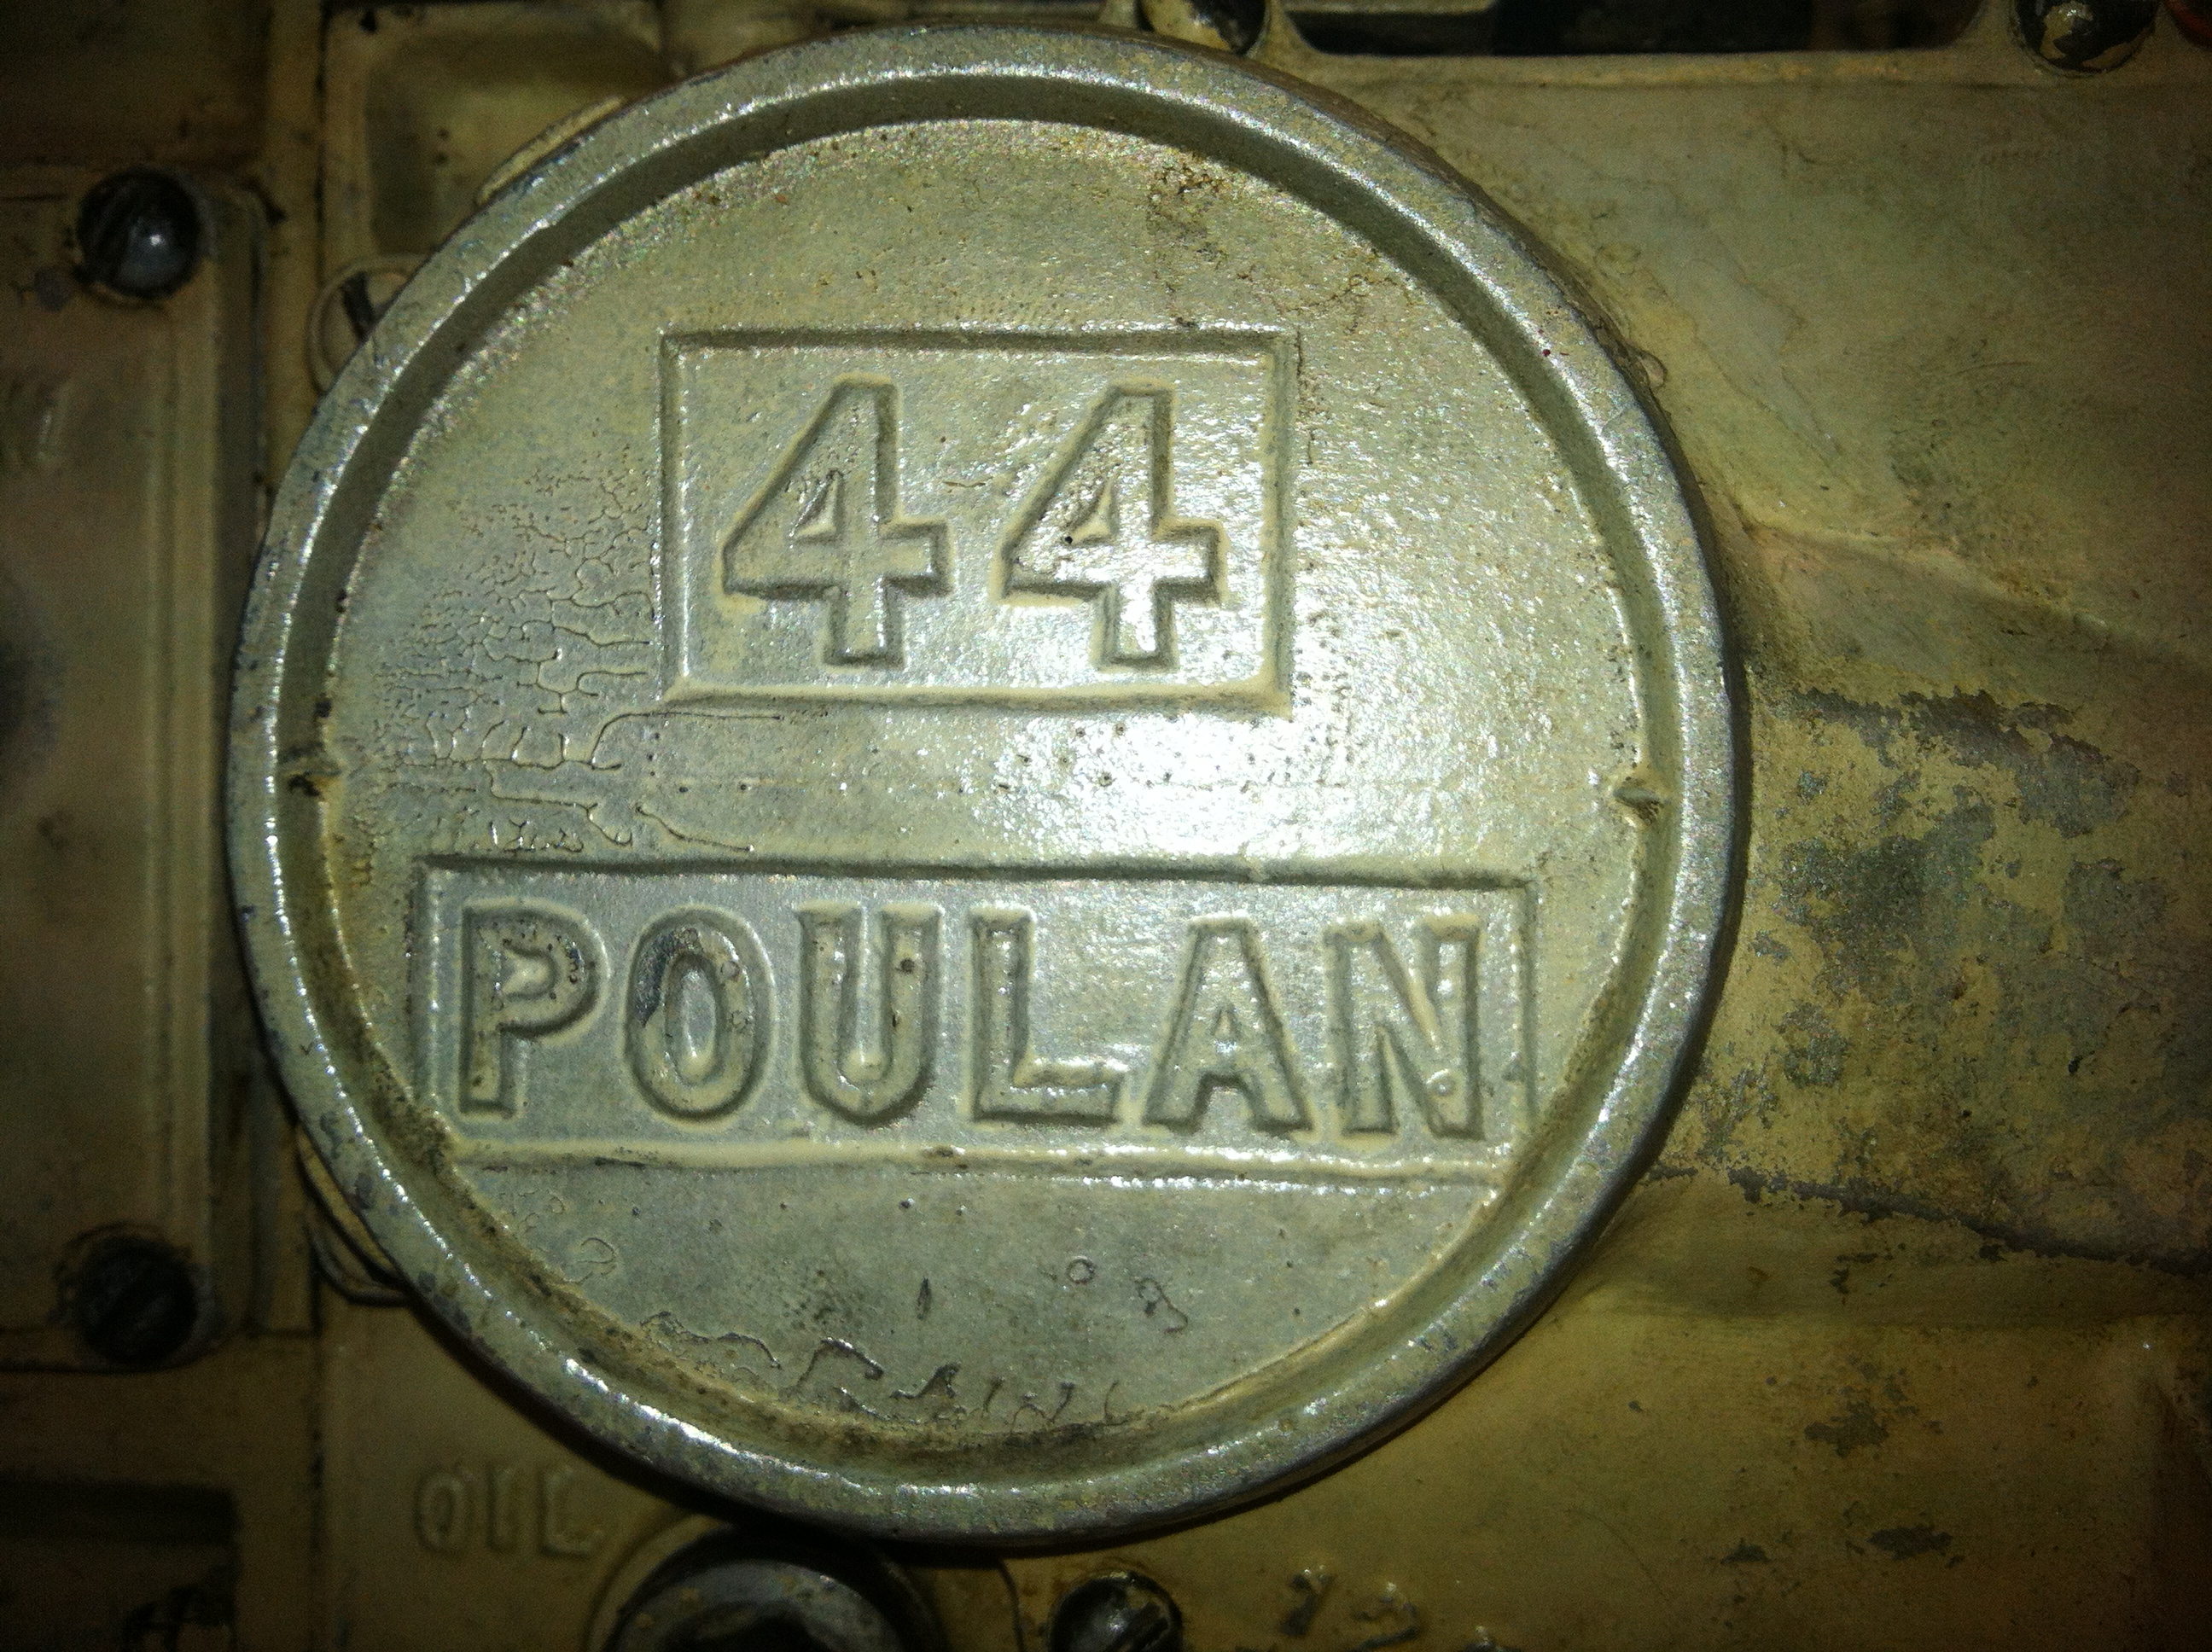 Poulan 44 (one man) pic 12